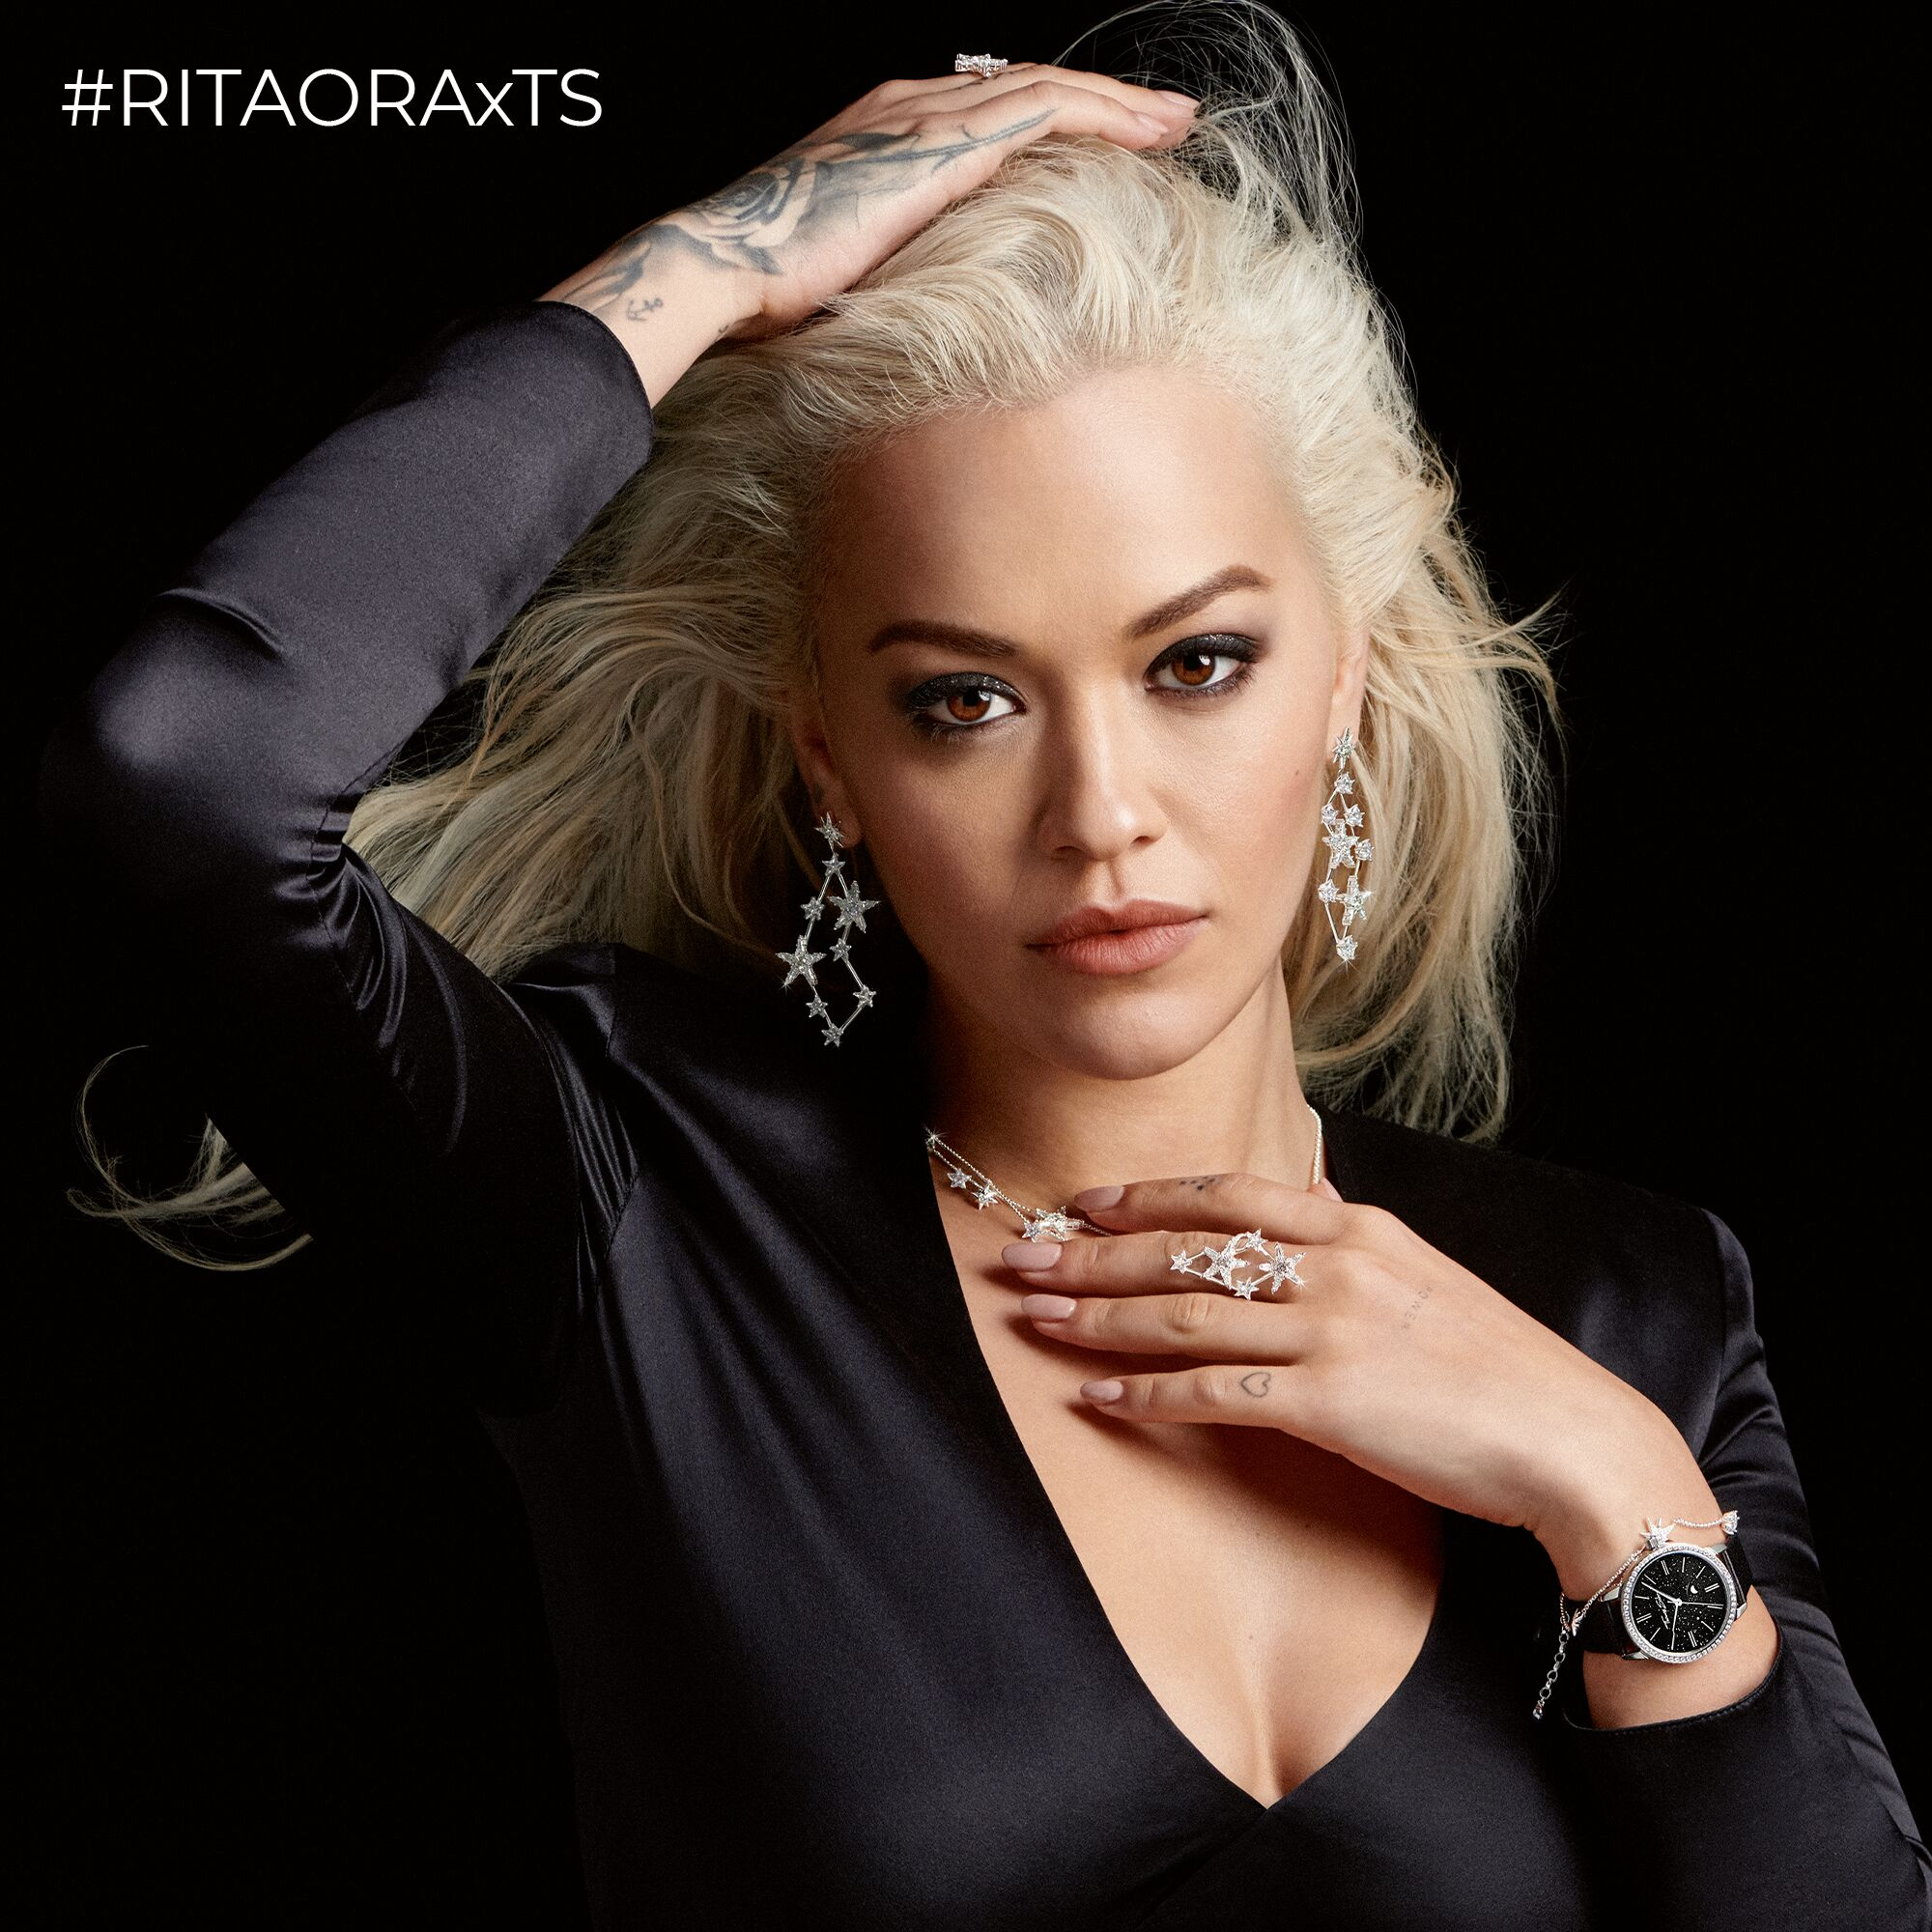 Thomas Sabo Rita Ora Magic Stars Jewellery